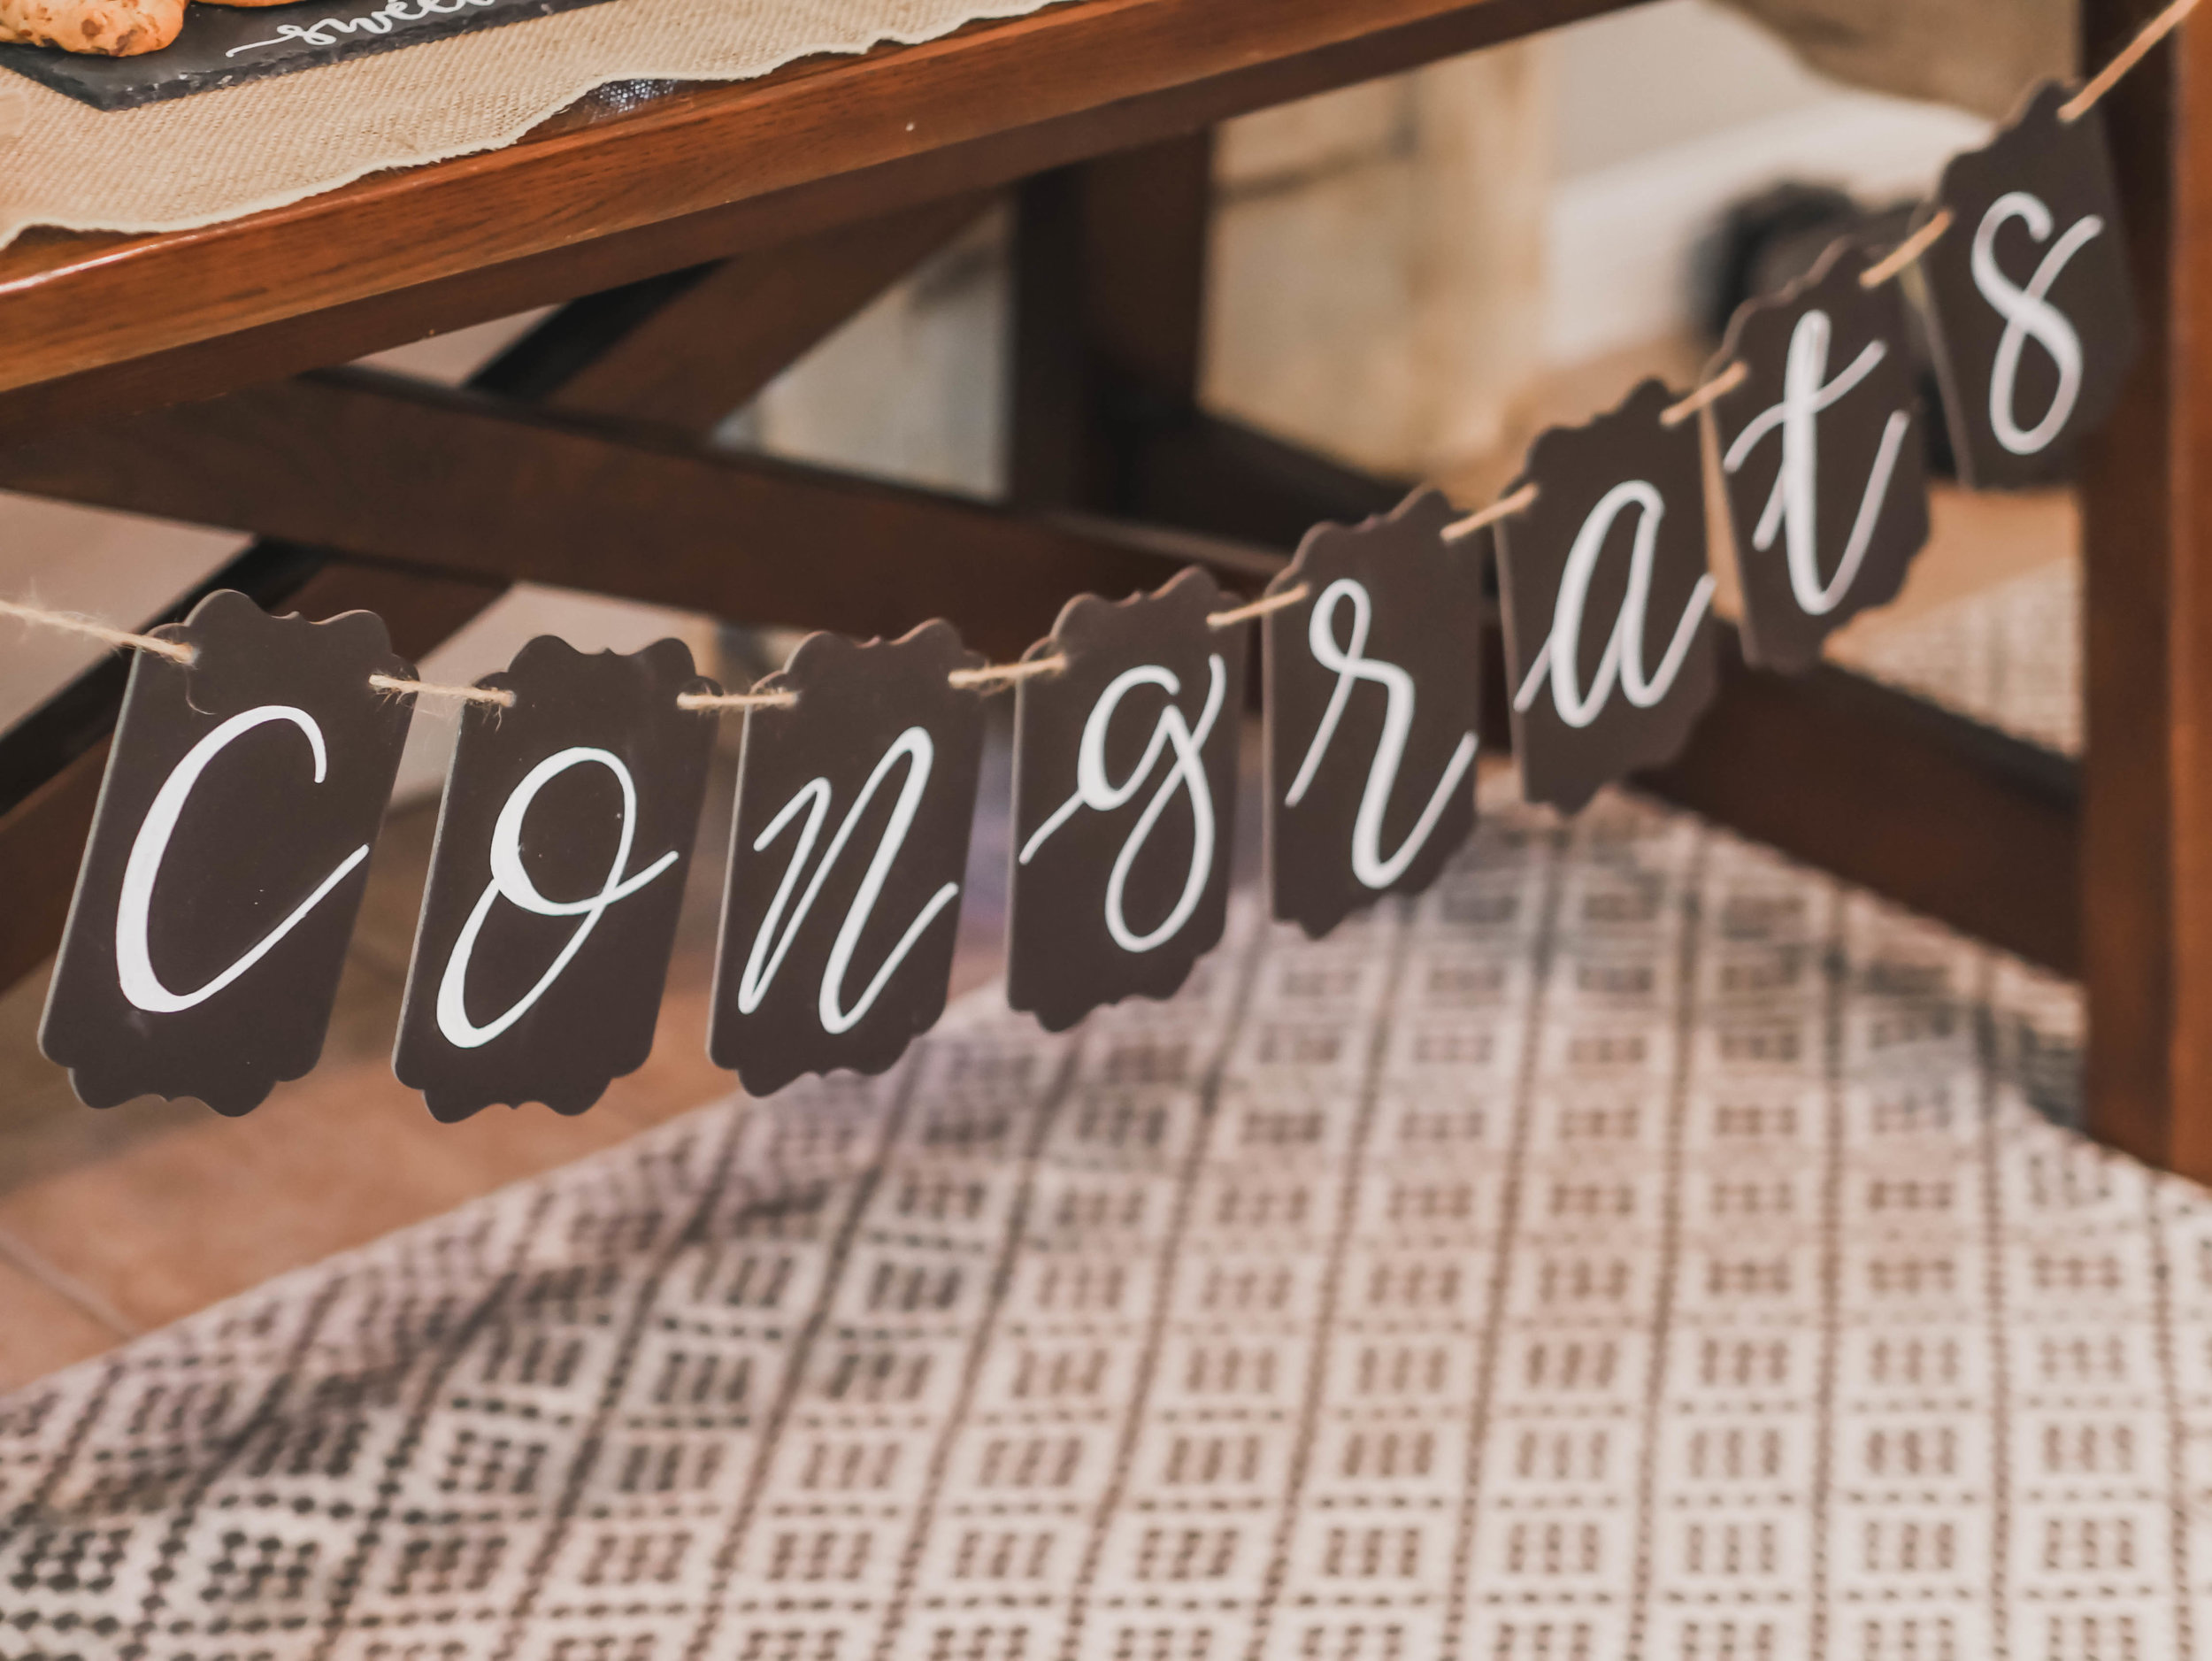 Hand lettered Congrats Graduation Party Banner - as seen on Mint Event Design www.minteventdesign.com #graduationparty #graduationpartyideas #partyideas #rusticpartyideas #partyinspiration #partybanner